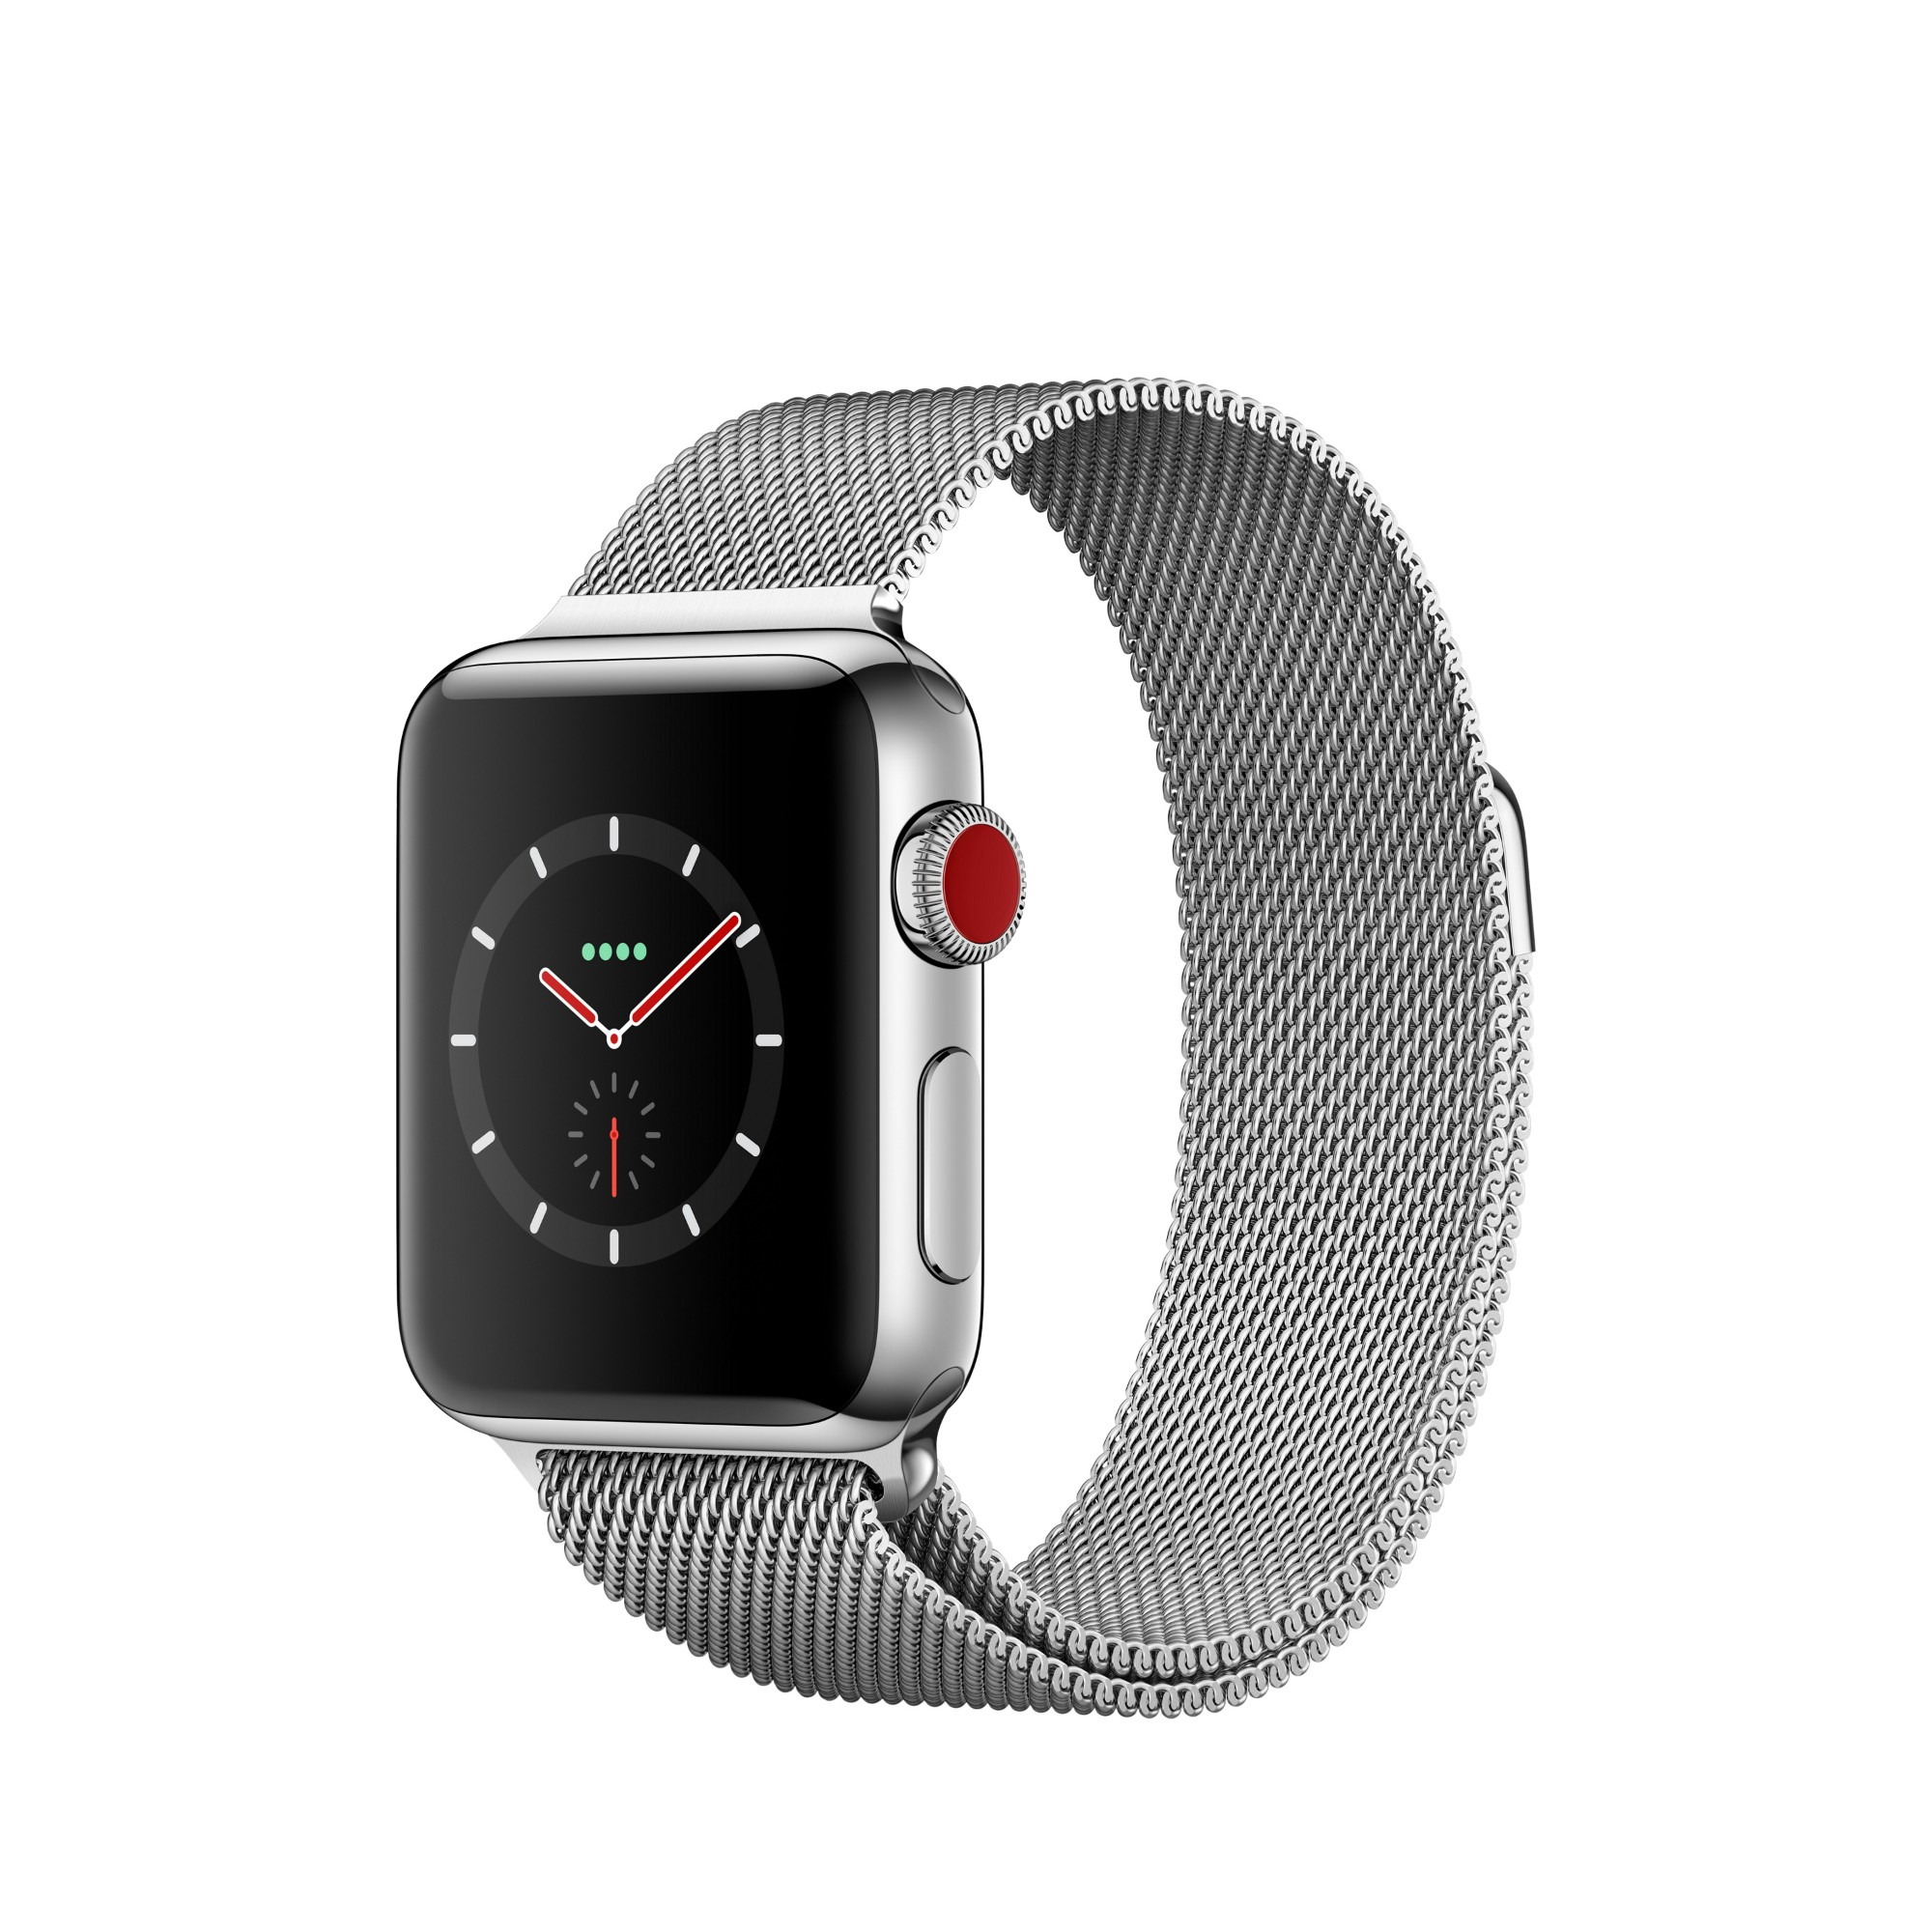 Watch Series 3 (gps + Cellular) - 38 Mm - Stainless Steel - Smart Watch With Milanese Loop (MR1N2B/A)